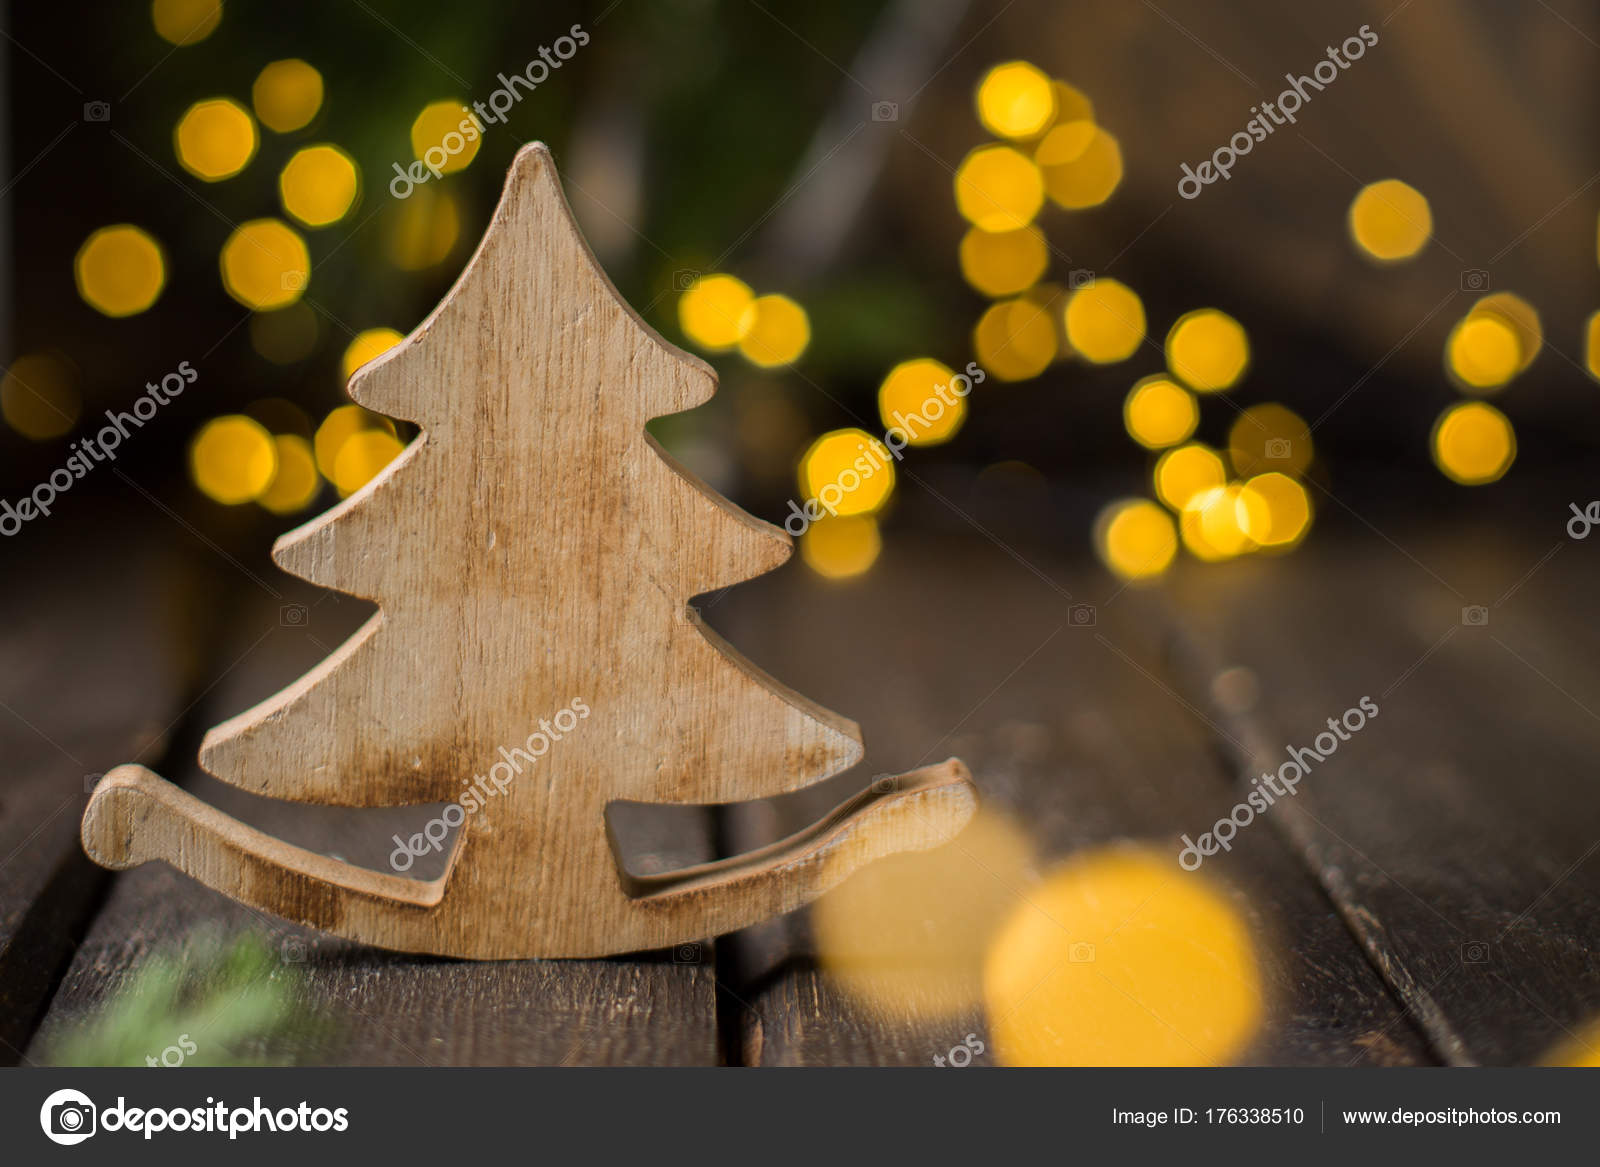 Christmas Tree Mood Wooden Vintage Xmas Dark Background Lights Stock Photo